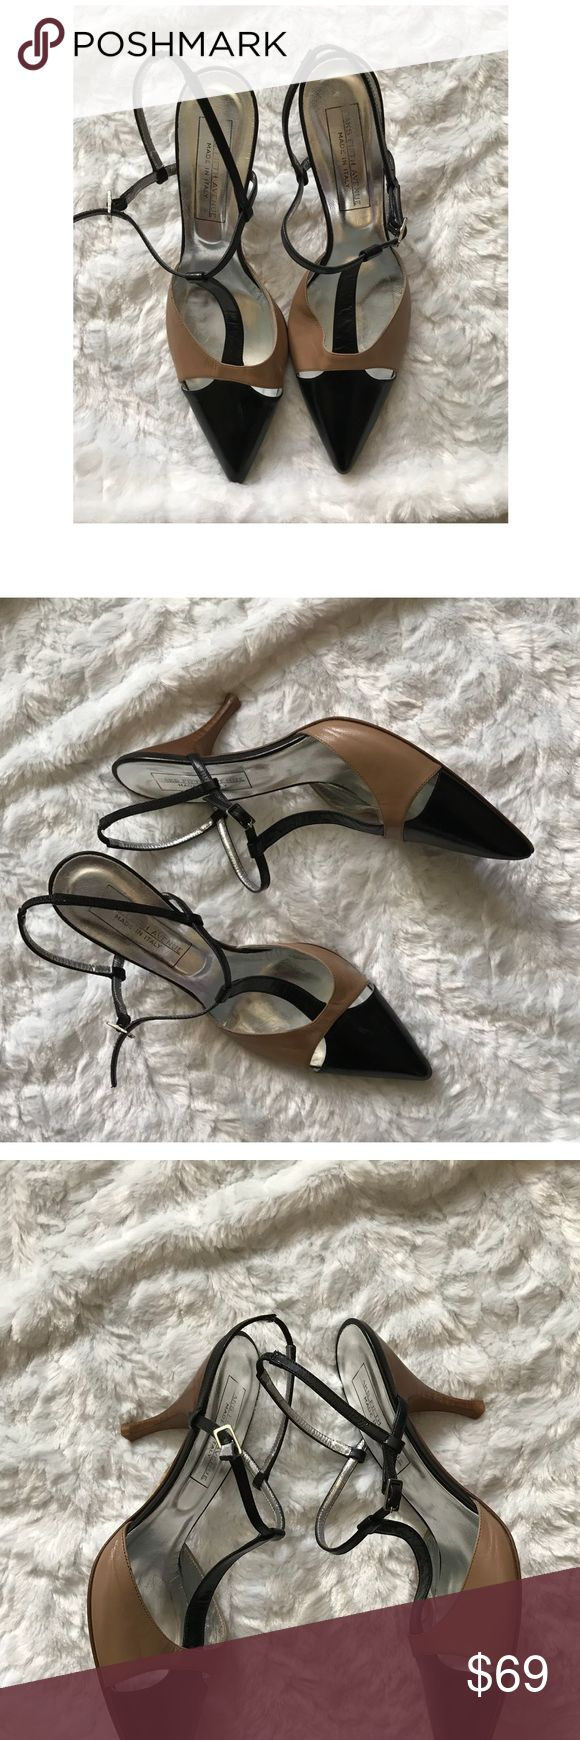 "Saks 5th Ave T Strap Heels Gorgeous Italian leather pointy toe heels! Tan and Black ,removable back strap,can be worn as a mule. Side buckle fastening. Wooden 3"" heel,leather sole. Made in Italy. Saks Fifth Avenue Shoes Heels"